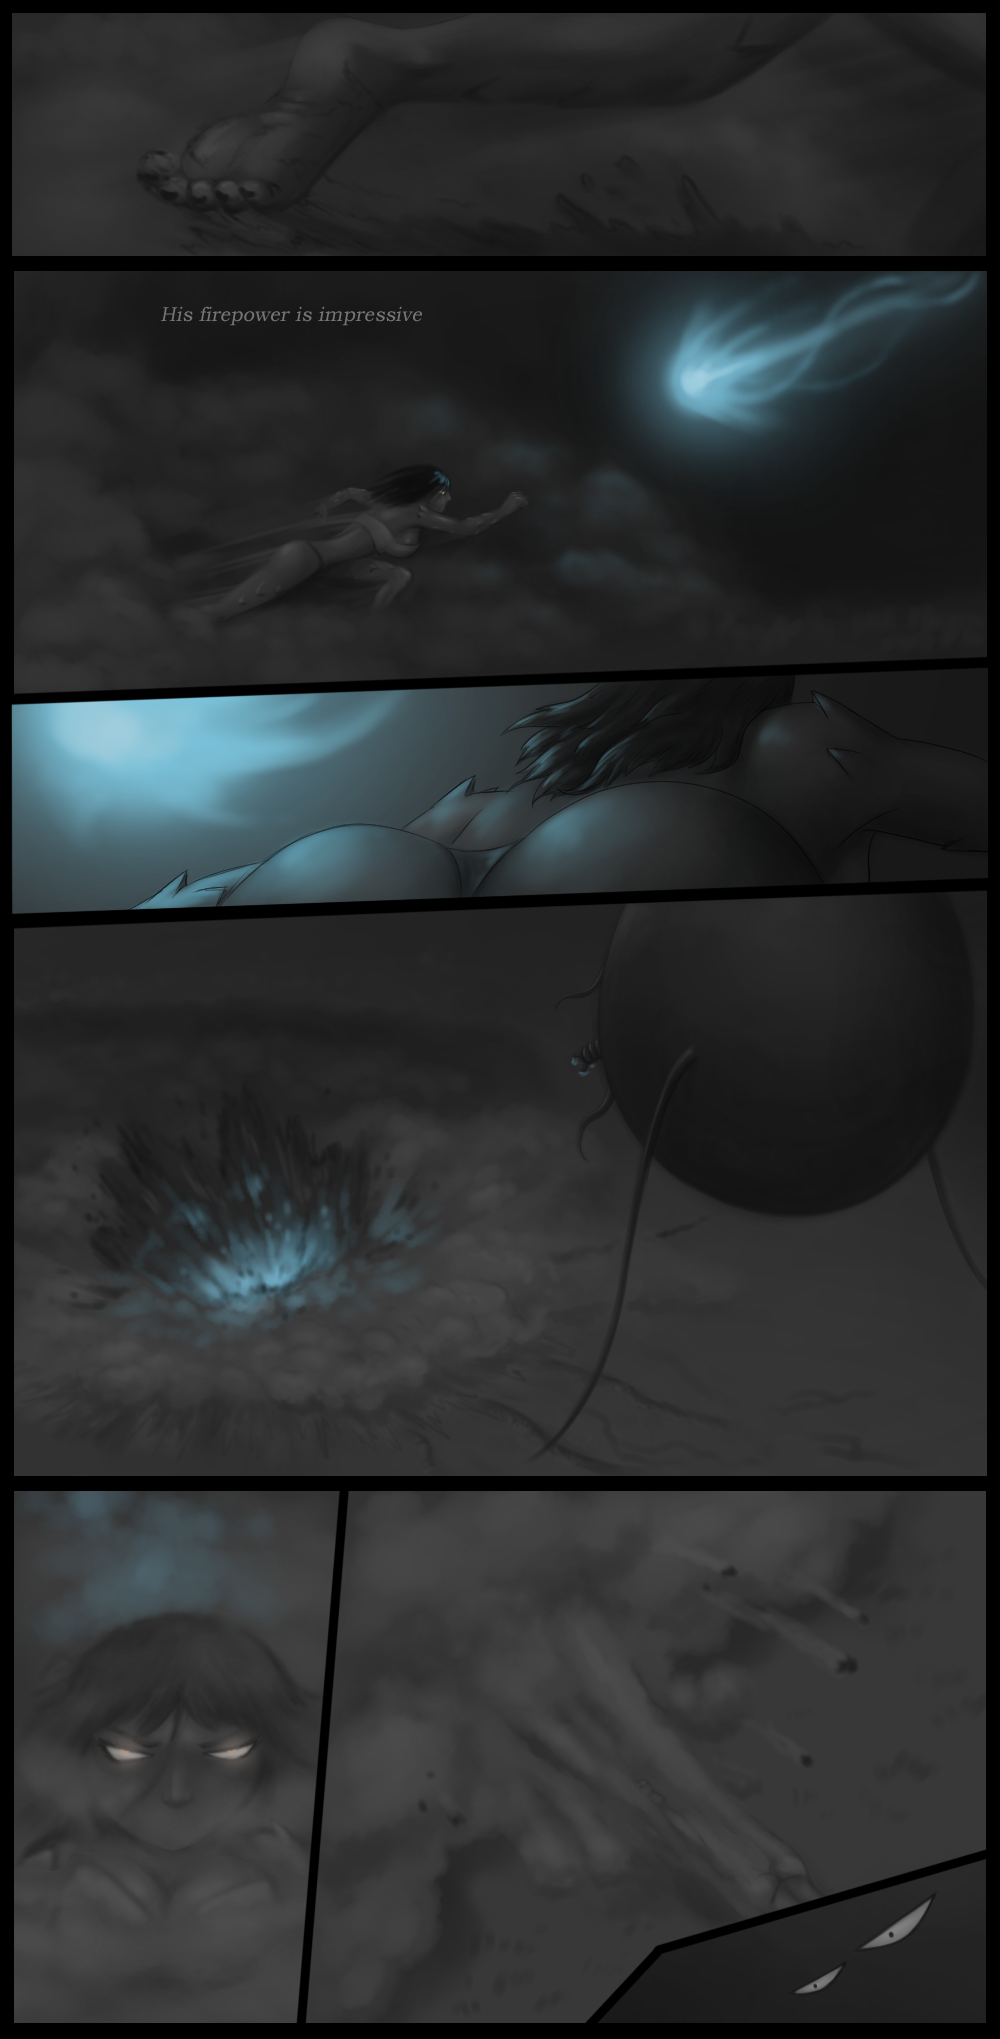 Page 87 - Battle against Glowslimer (Part 34)